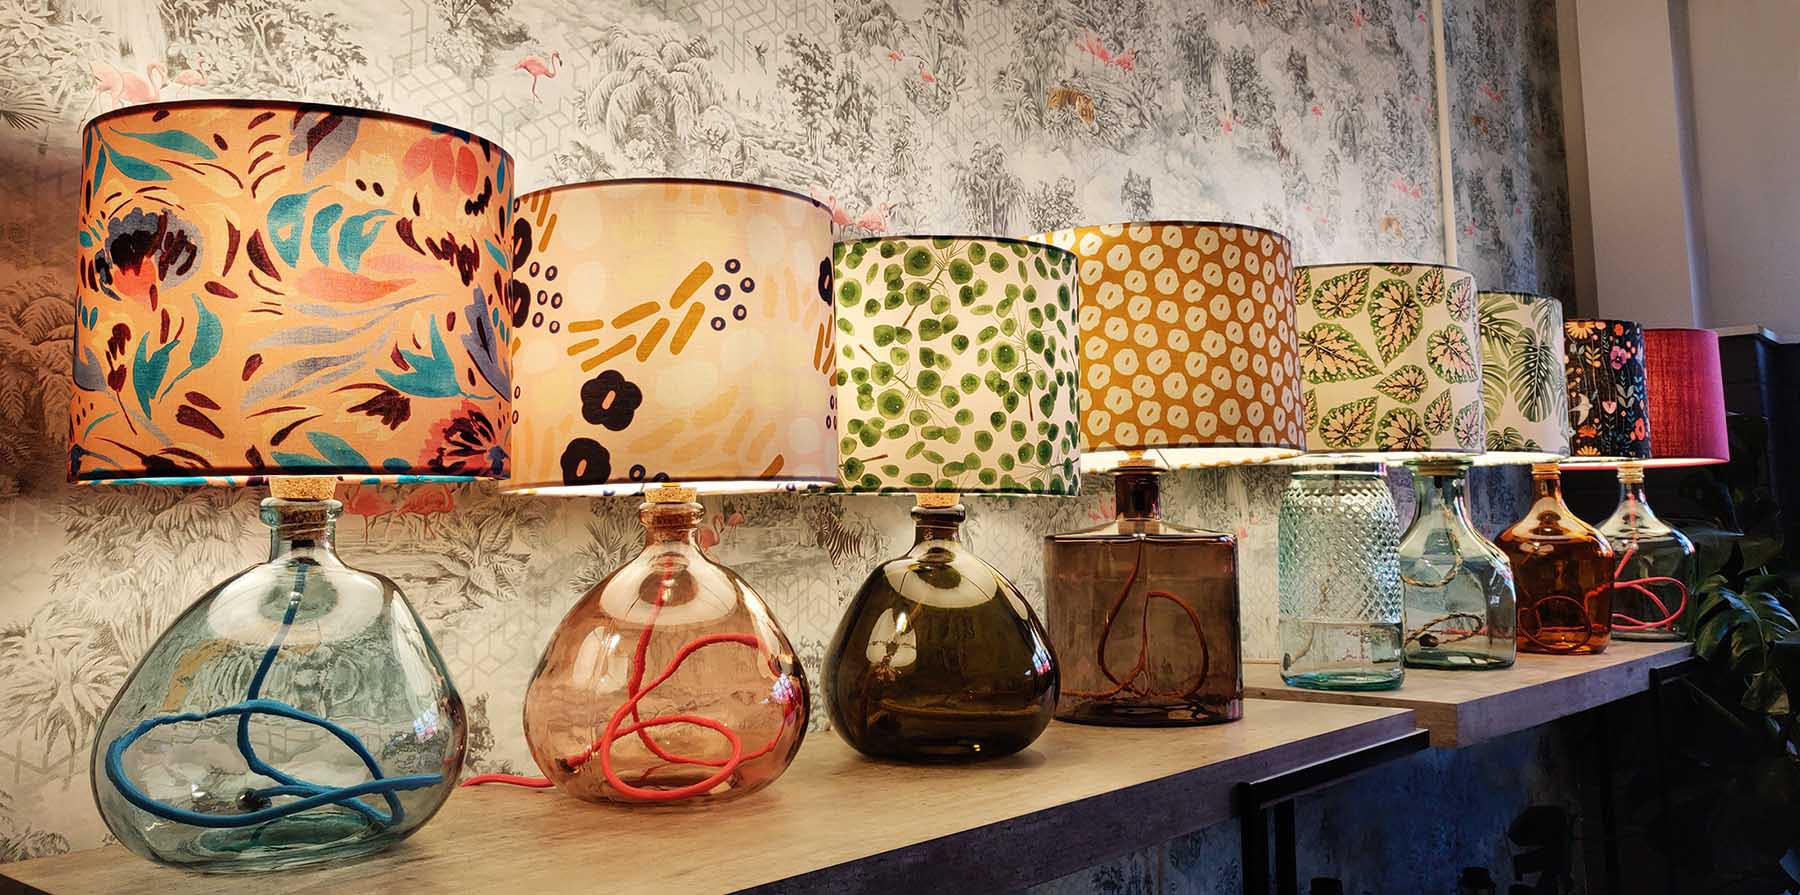 recycled-glass-lamps-on-display.jpg